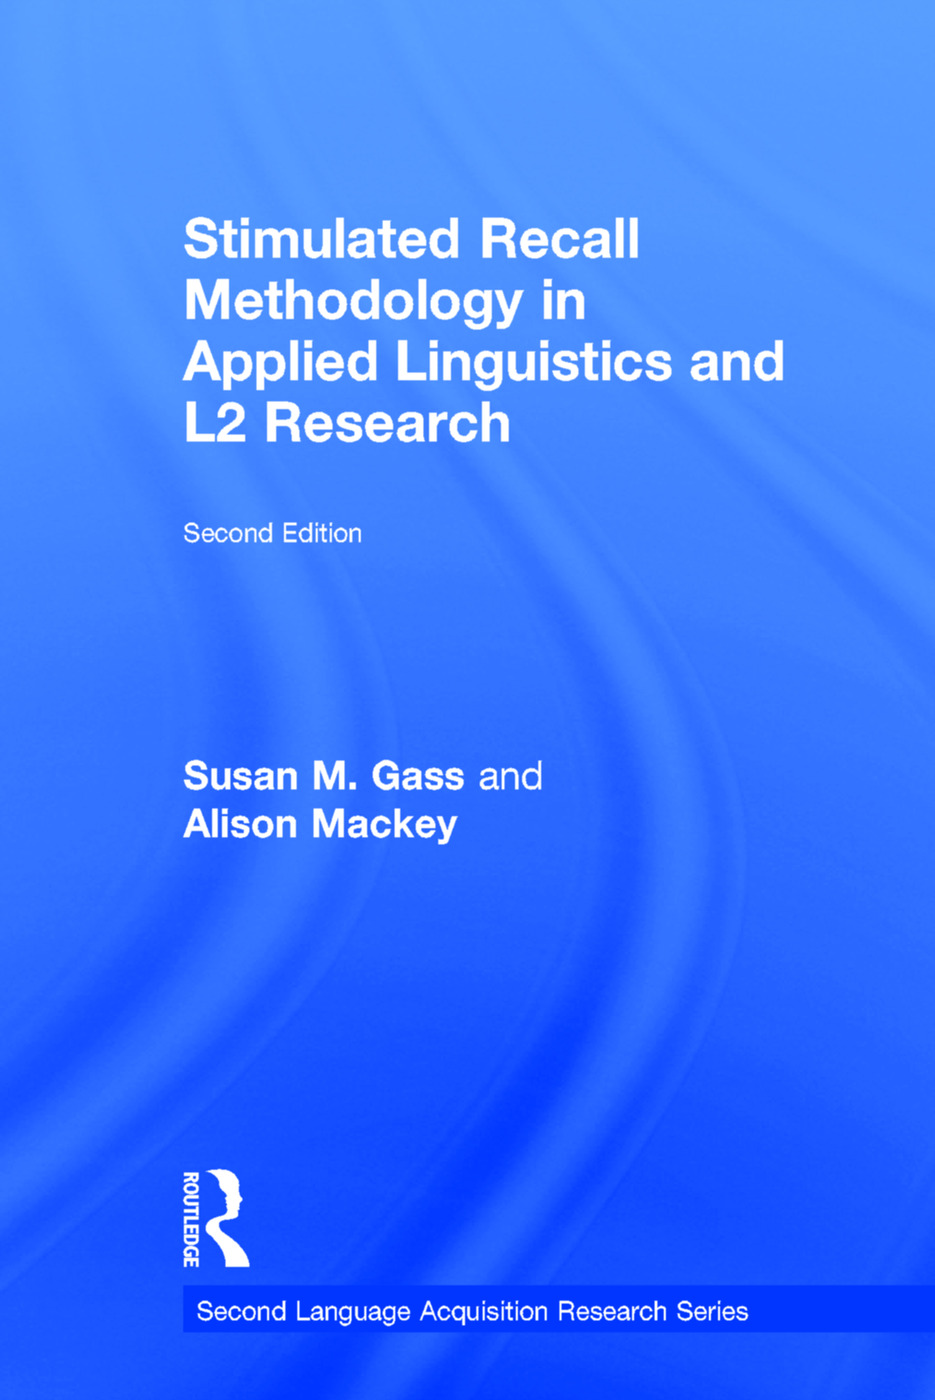 Introspection and L2 Research